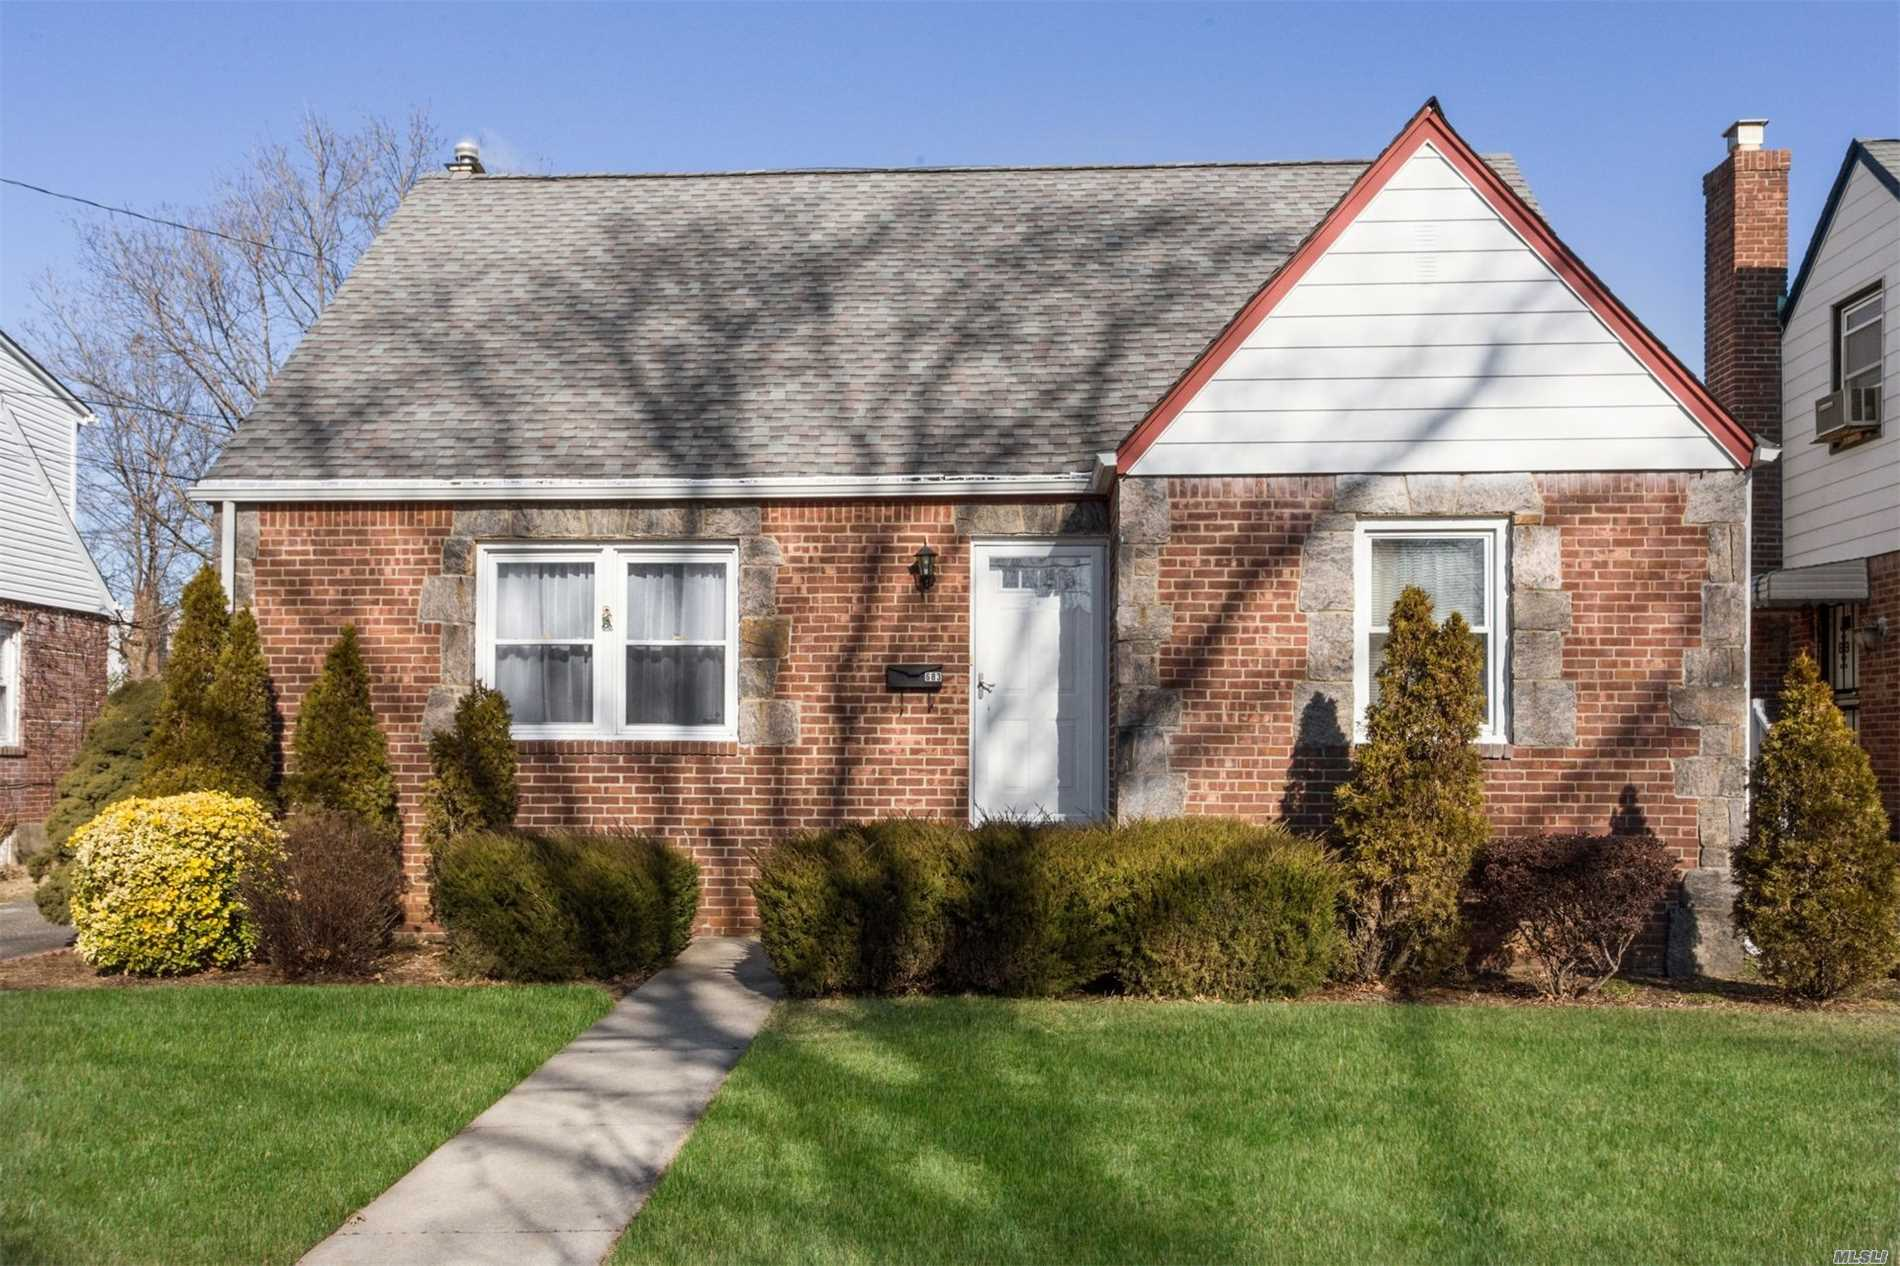 Delightful, Sun-Drenched 3 Br, 1 Ba Brick Cape Located Mid-Block On 54 X 100 Property On A Tree-Lined Street. In True Move-In Condition, The Home Features An Inviting Living Rm, Eik, 2 Brs & A New Hall Bath On The Main Level. The 3rd Br Is Upstairs Where There Is Bonus Space Ready For You To Add A 4th Br Or Whatever Your Lifestyle Requires. The Unfinished Basement Offers Laundry/Utilites/Storage. Detached 1C Gar & Fenced Backyard. Cac, Updated Hw Heater, Roof, Windows, Stoops. Smith St School.